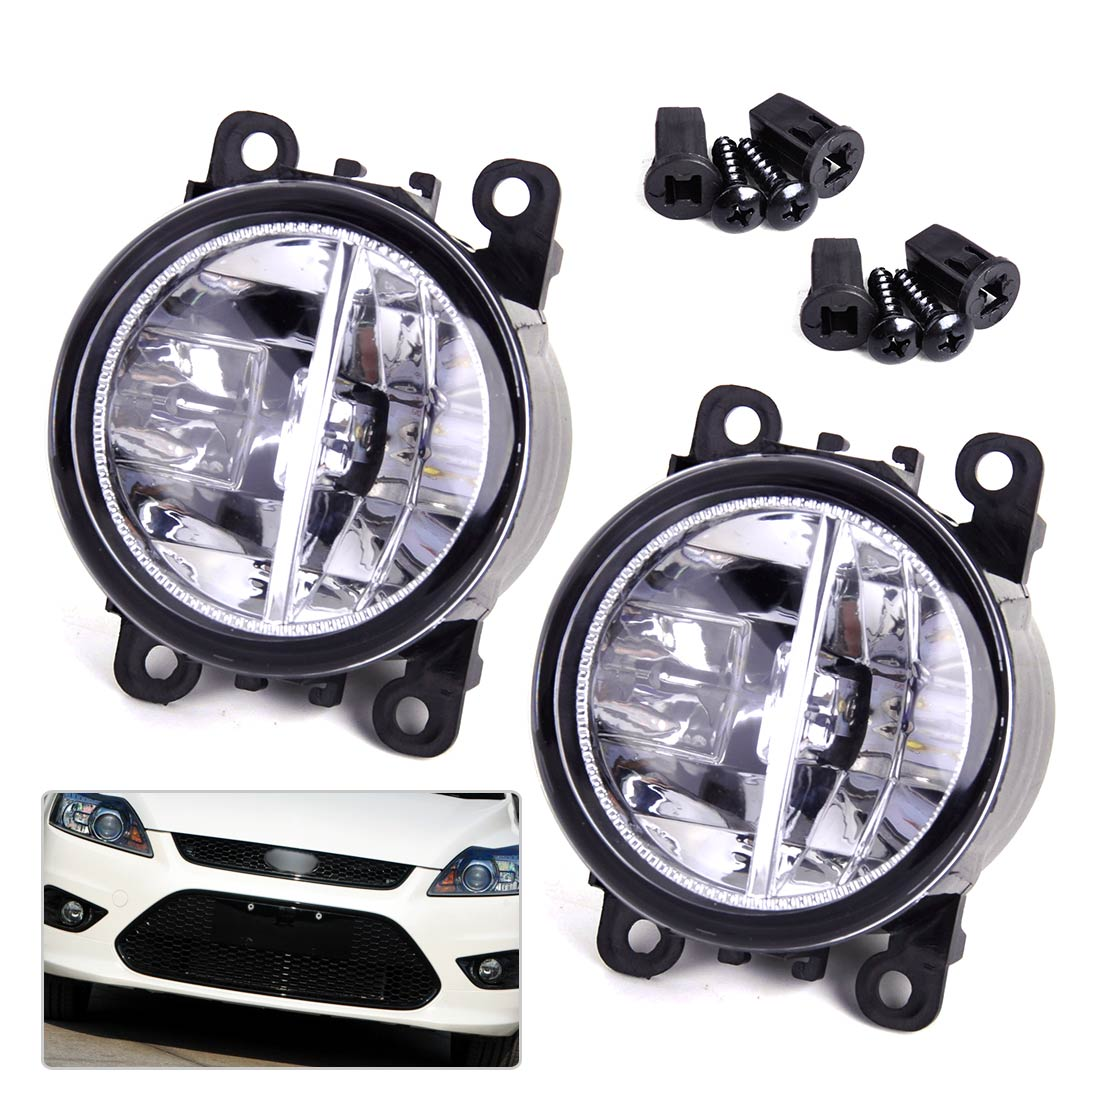 beler 2pcs Highlighted LED White Fog Light Lamp Replacement 4F9Z-15200-AA,84501AJ00A for Ford Focus Acura Honda Subaru Suzuki original 84501 101lf